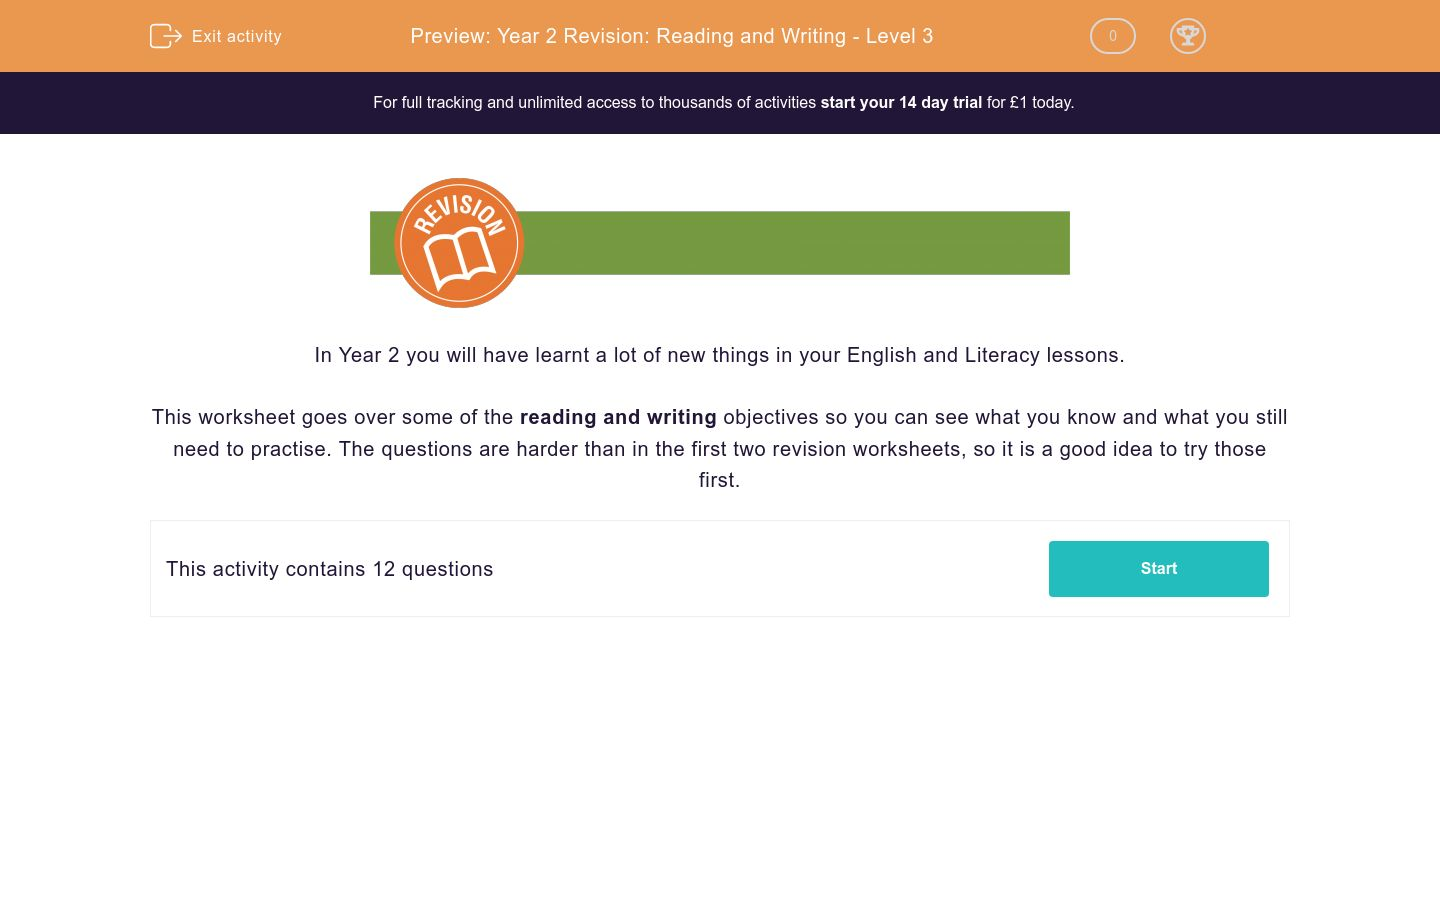 'Year 2 Revision: Reading and Writing - Level 3' worksheet